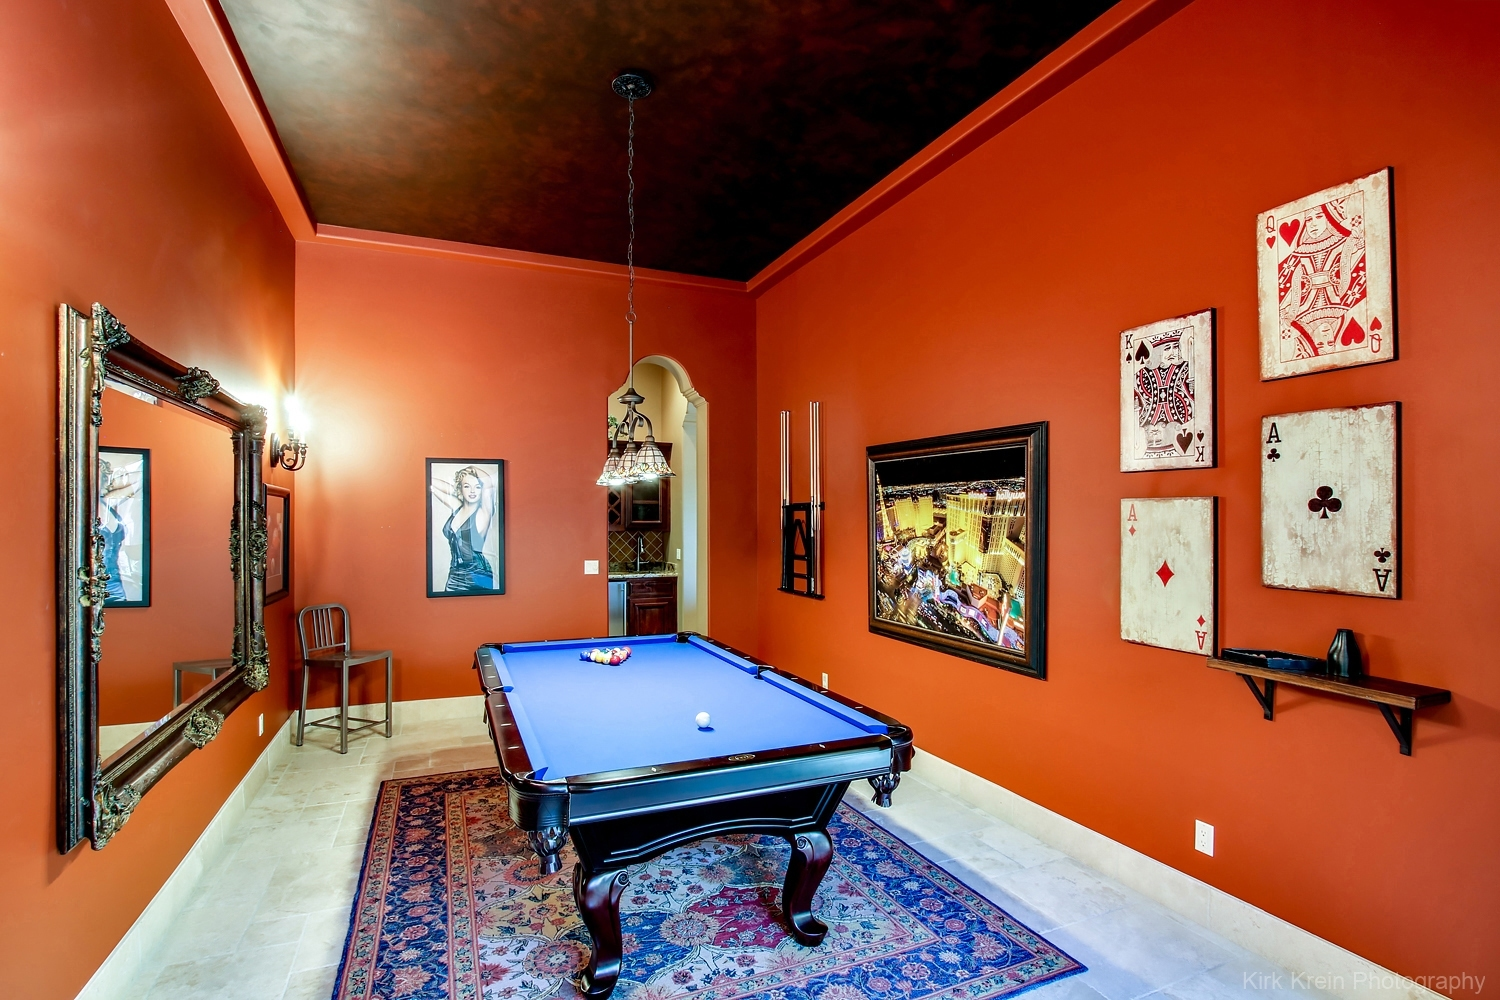 Billiard Room - Architectural, Residential and Commercial Real Estate Photography by Kirk Krein, Phoenix, AZ & East Valley